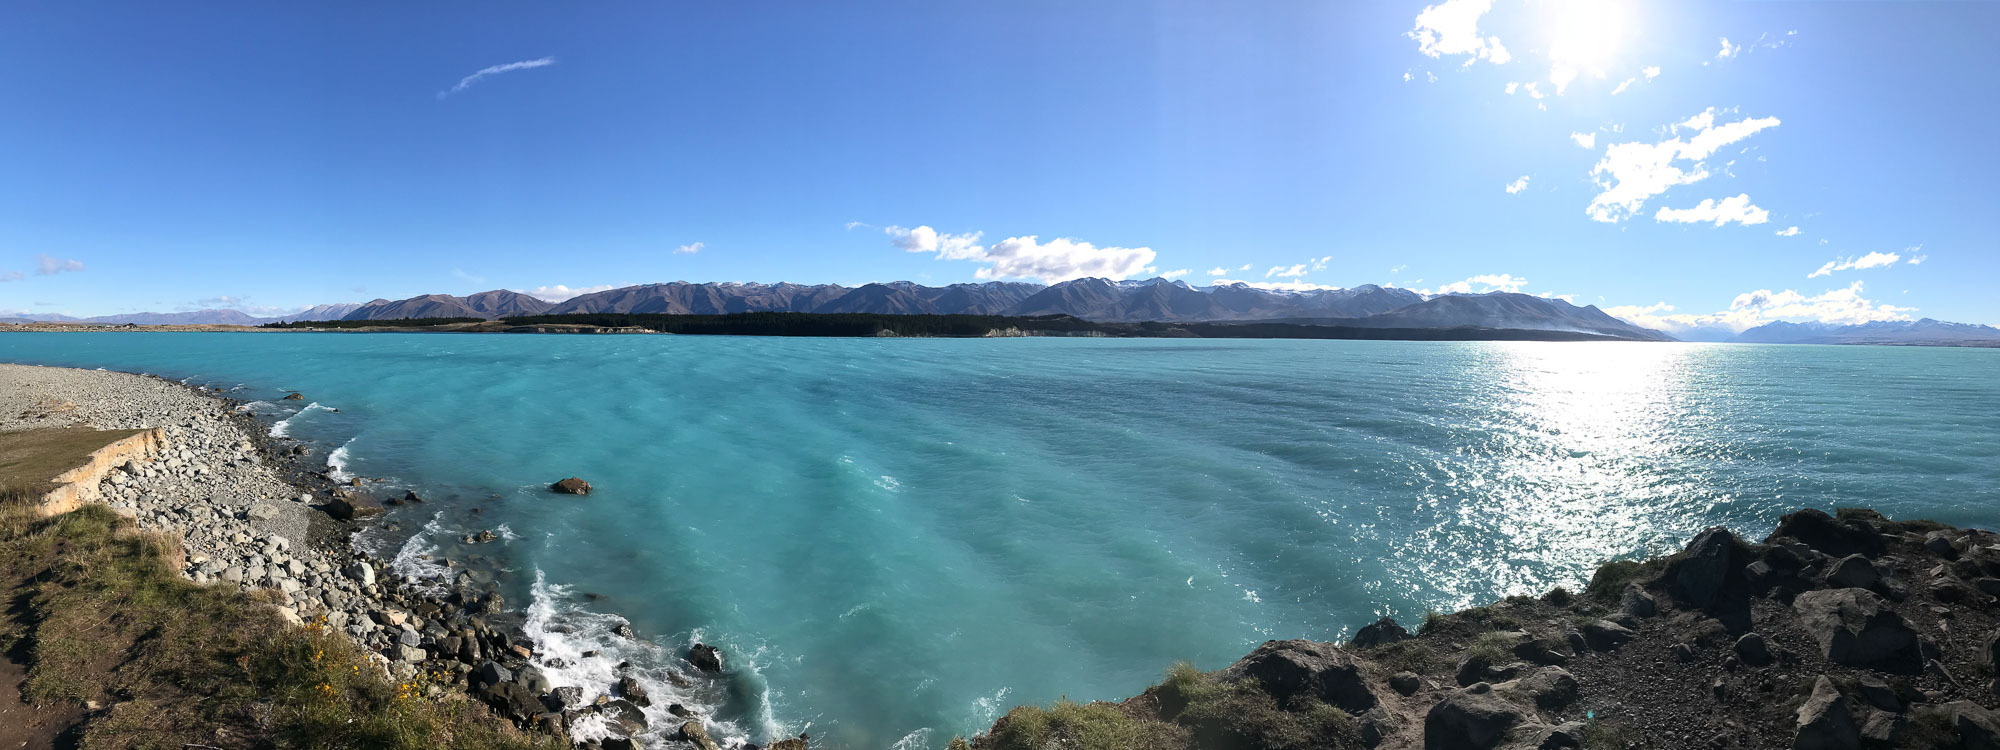 Ocean views on South Island, New Zealand.